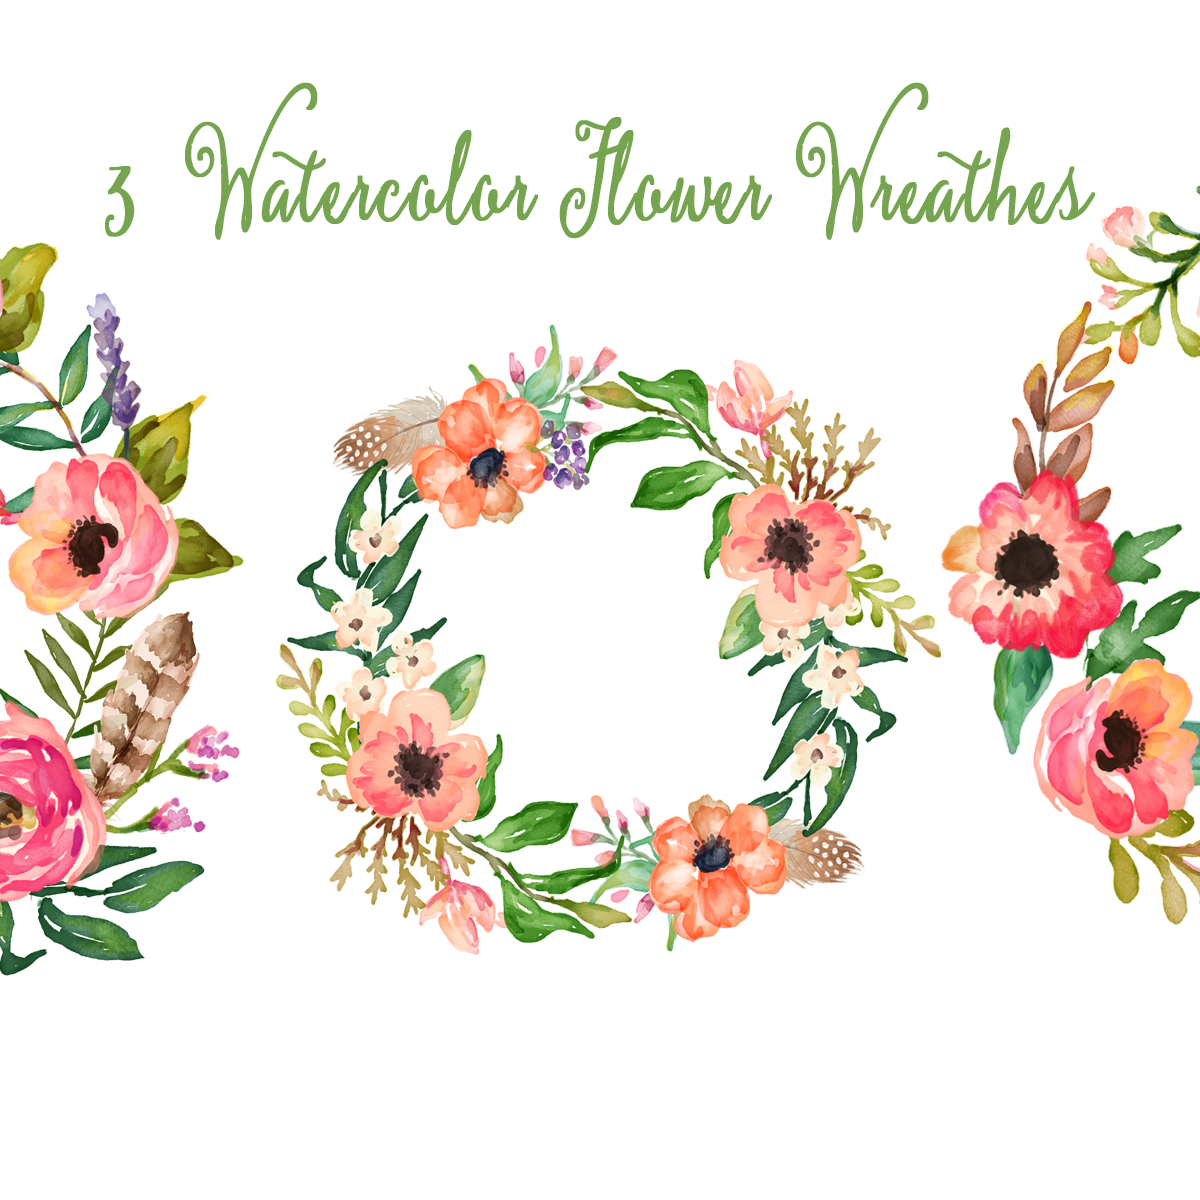 Watercolor hand painted floral frames clipart floral wreaths